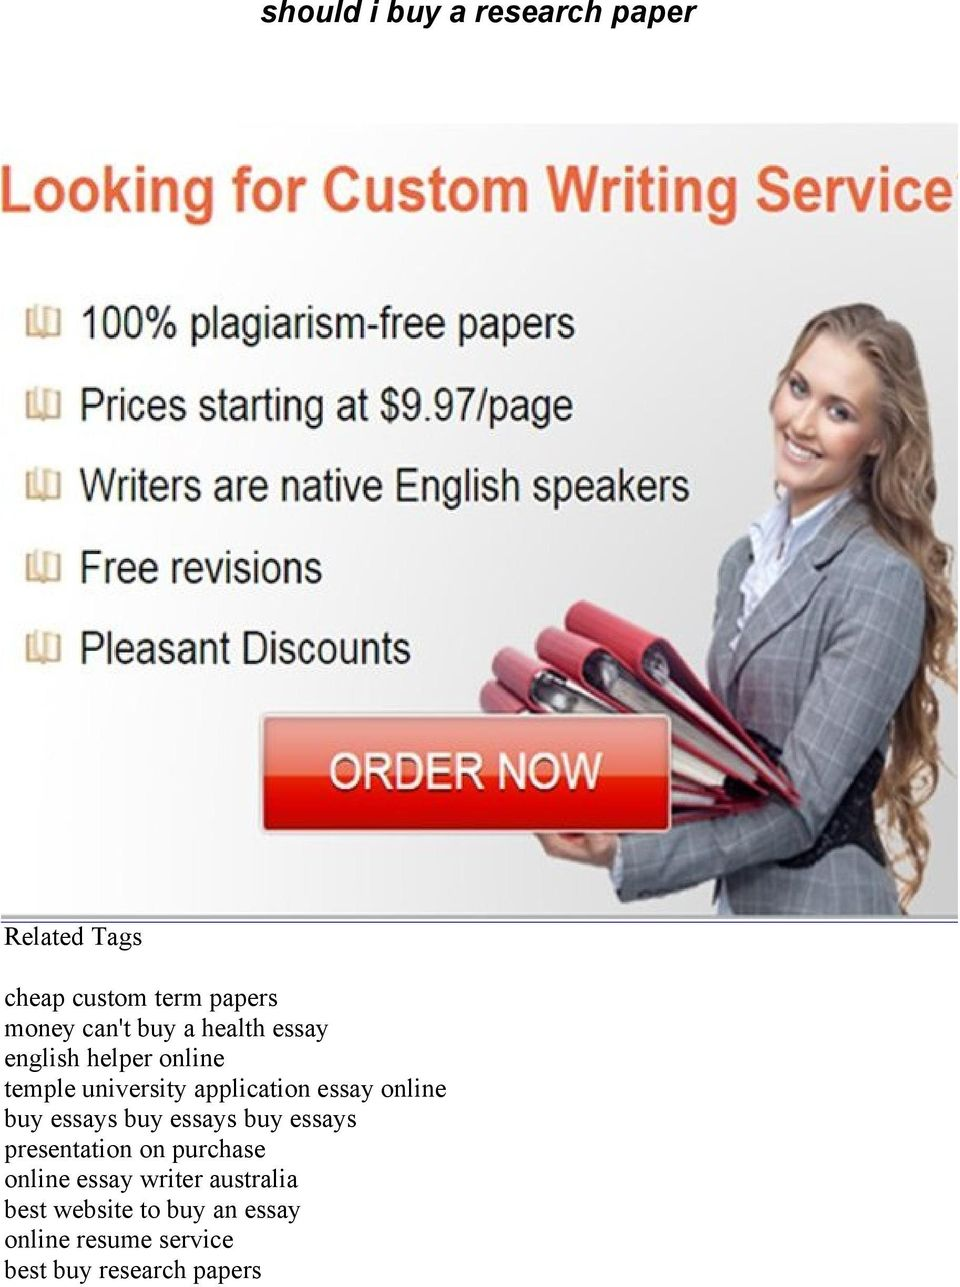 online buy essays buy essays buy essays presentation on purchase online essay